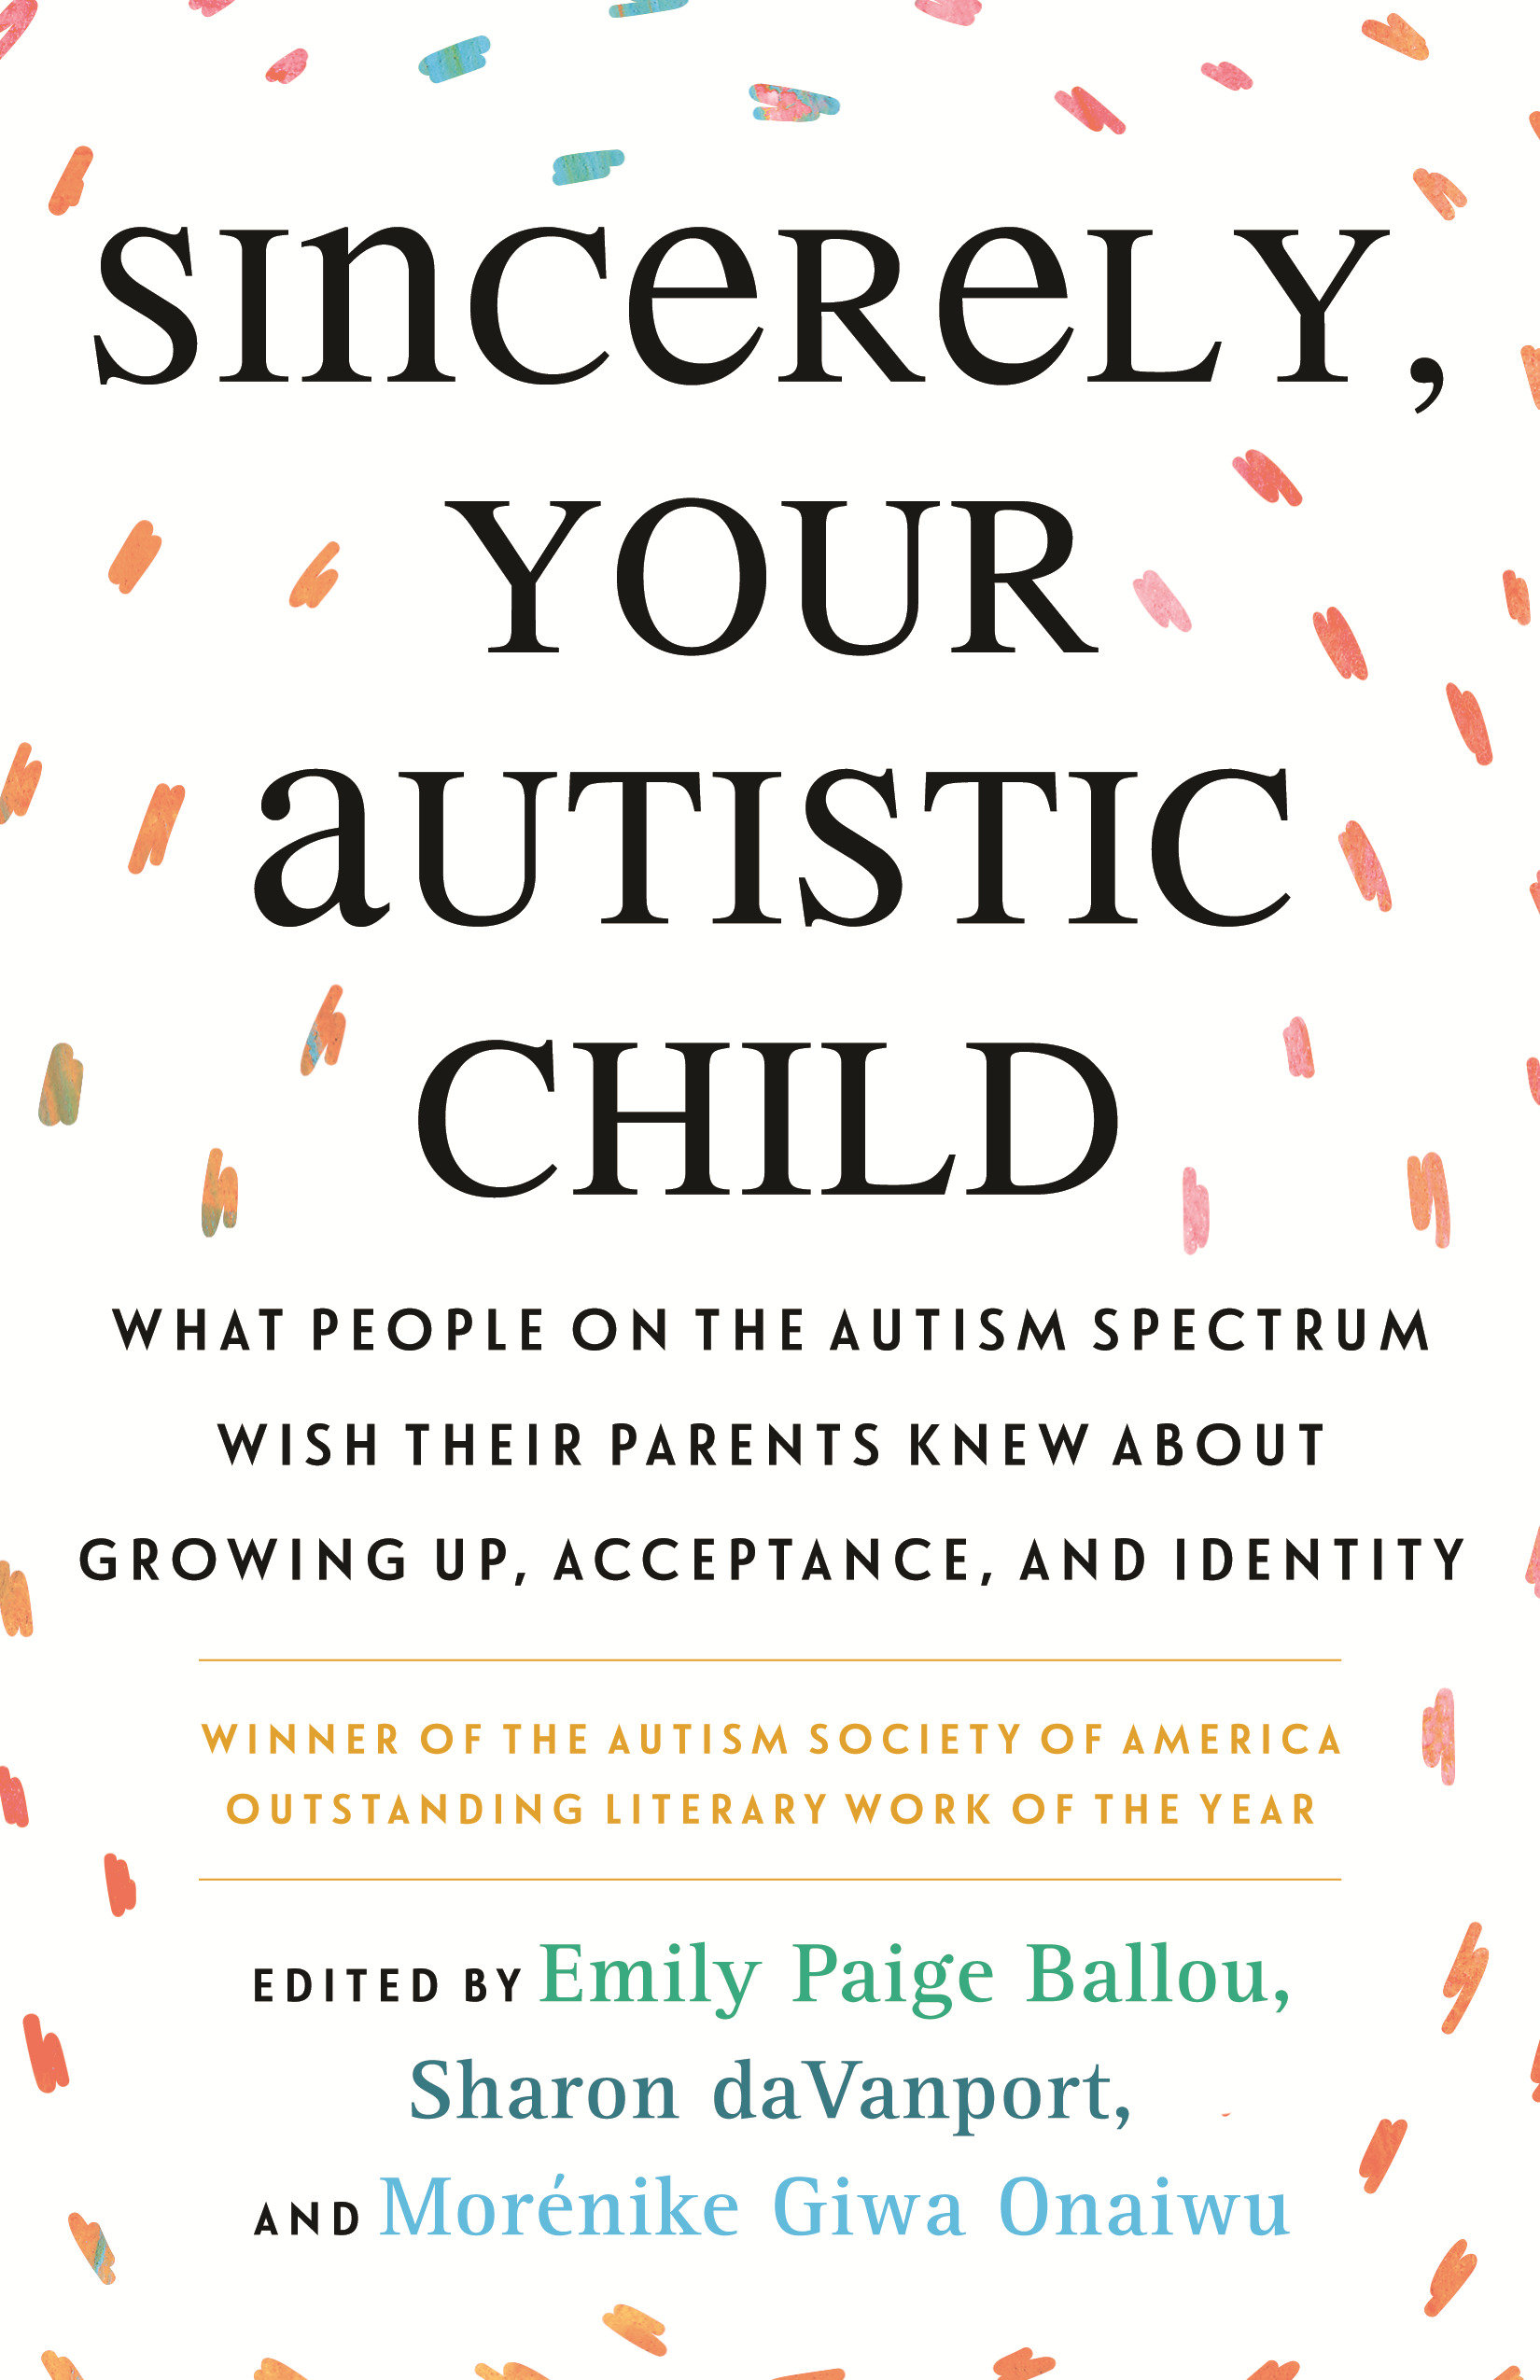 Sincerely, Your Autistic Child What People on the Autism Spectrum Wish Their Parents Knew About Growing Up, Acceptance, and Identity